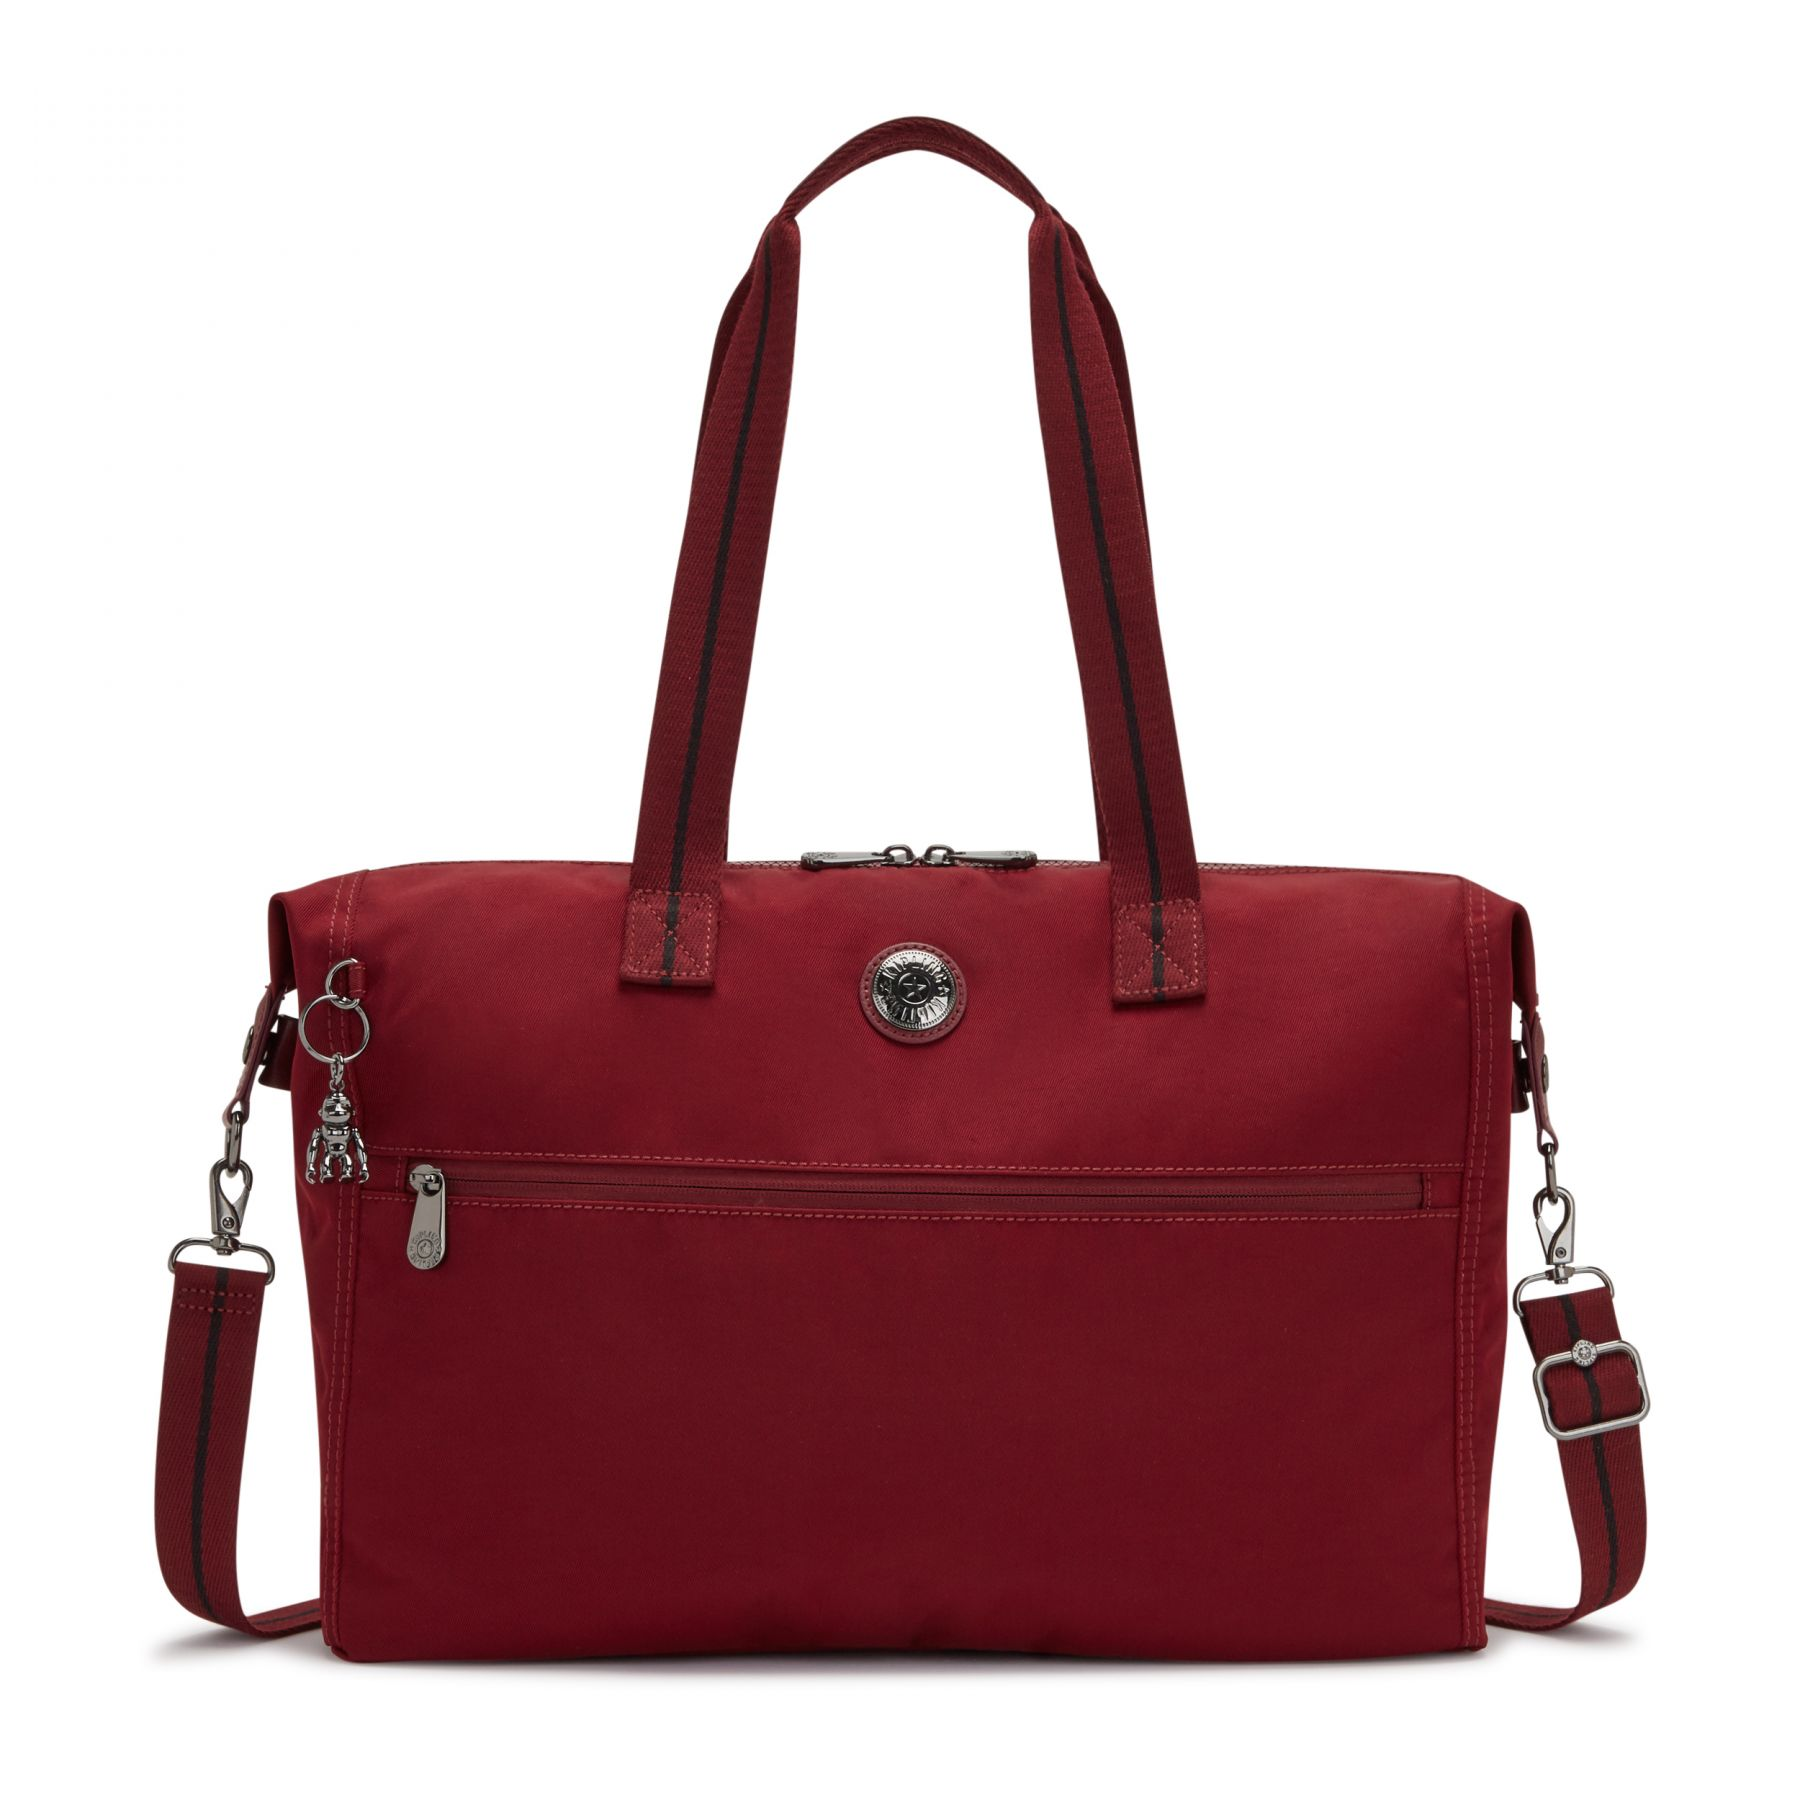 ILIA BACKPACKS by Kipling - Front view